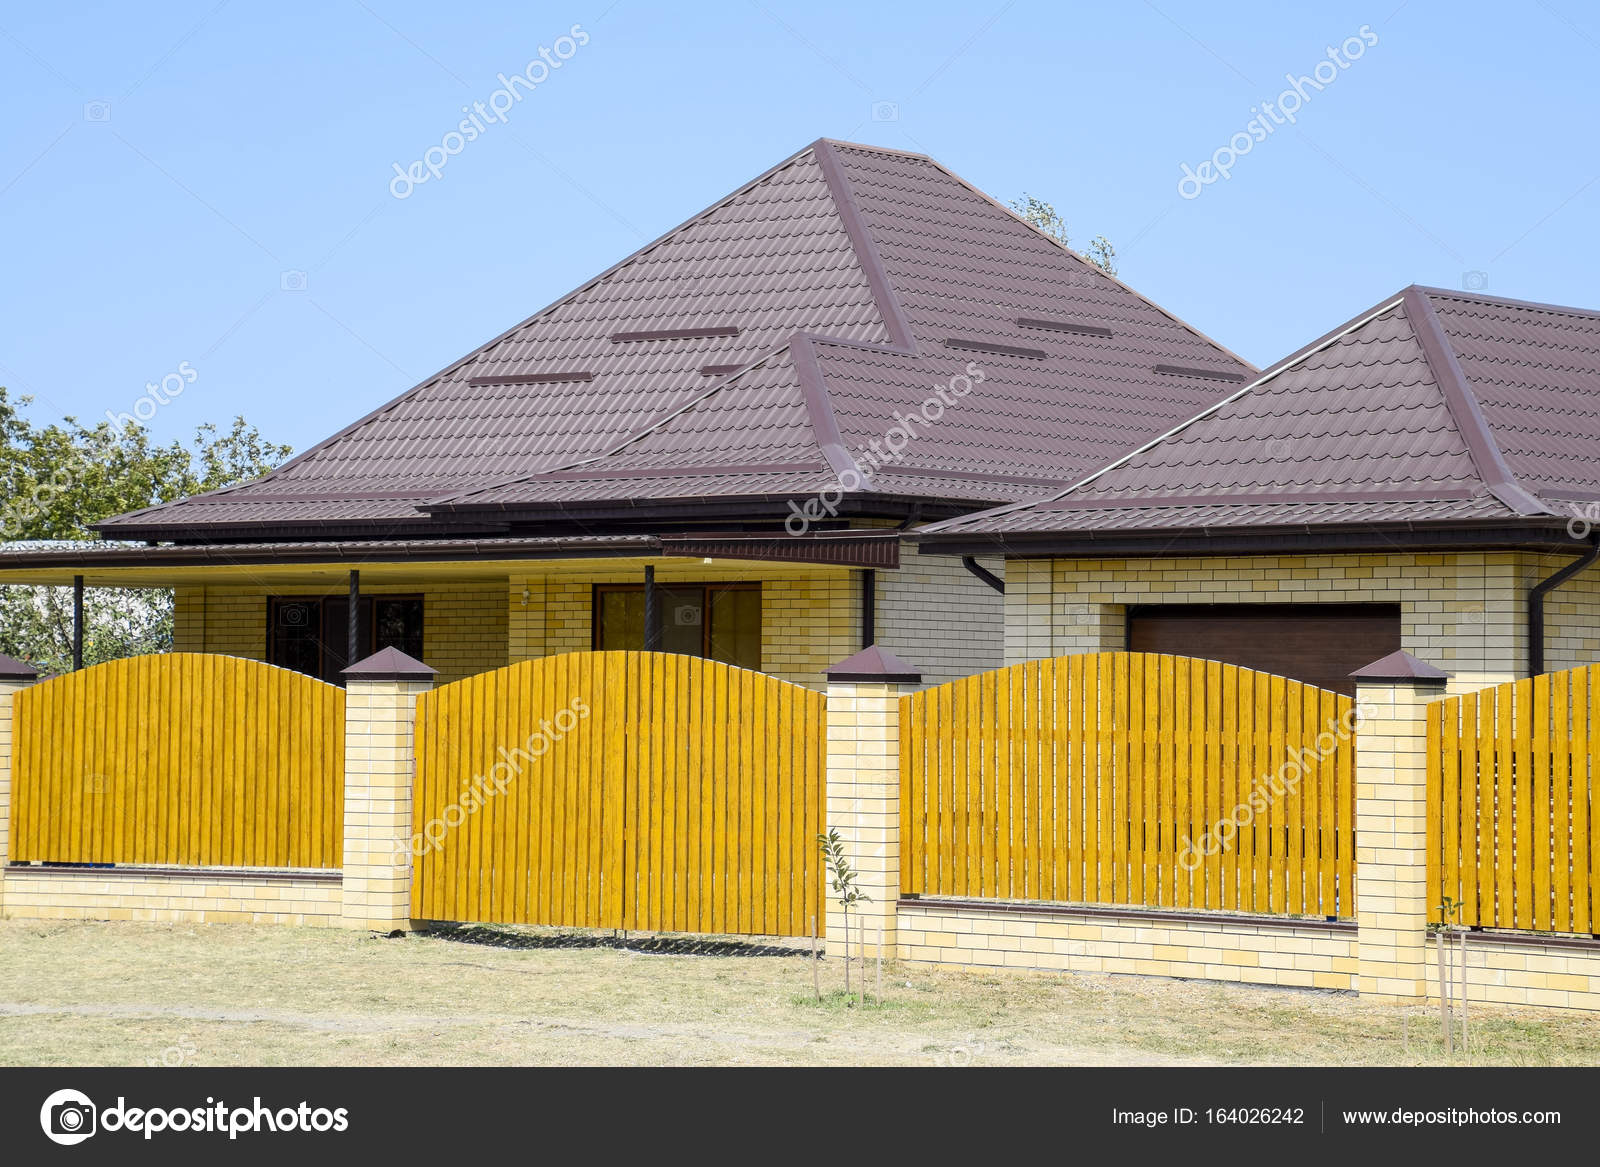 Brick House With Corrugated Metal Profile Roof And Wooden Fence Beautiful View Of The Facade Style Of Design P O By Leonid_eremeychuk